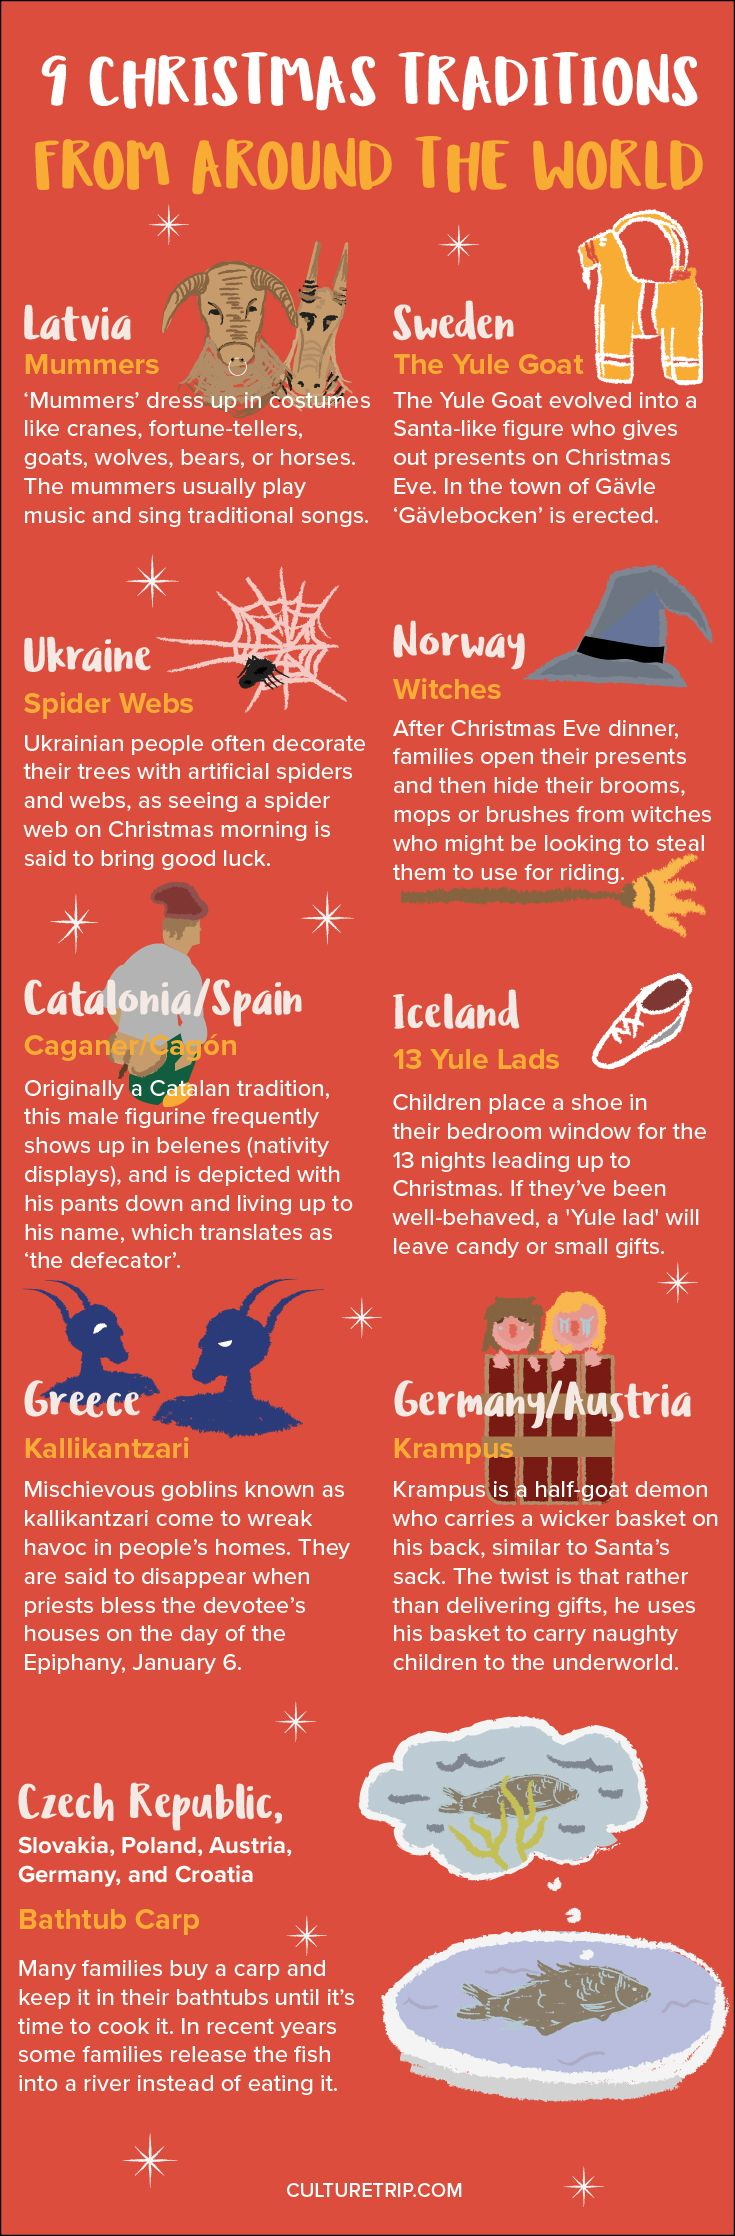 10 Quirky Christmas Traditions from Around the World